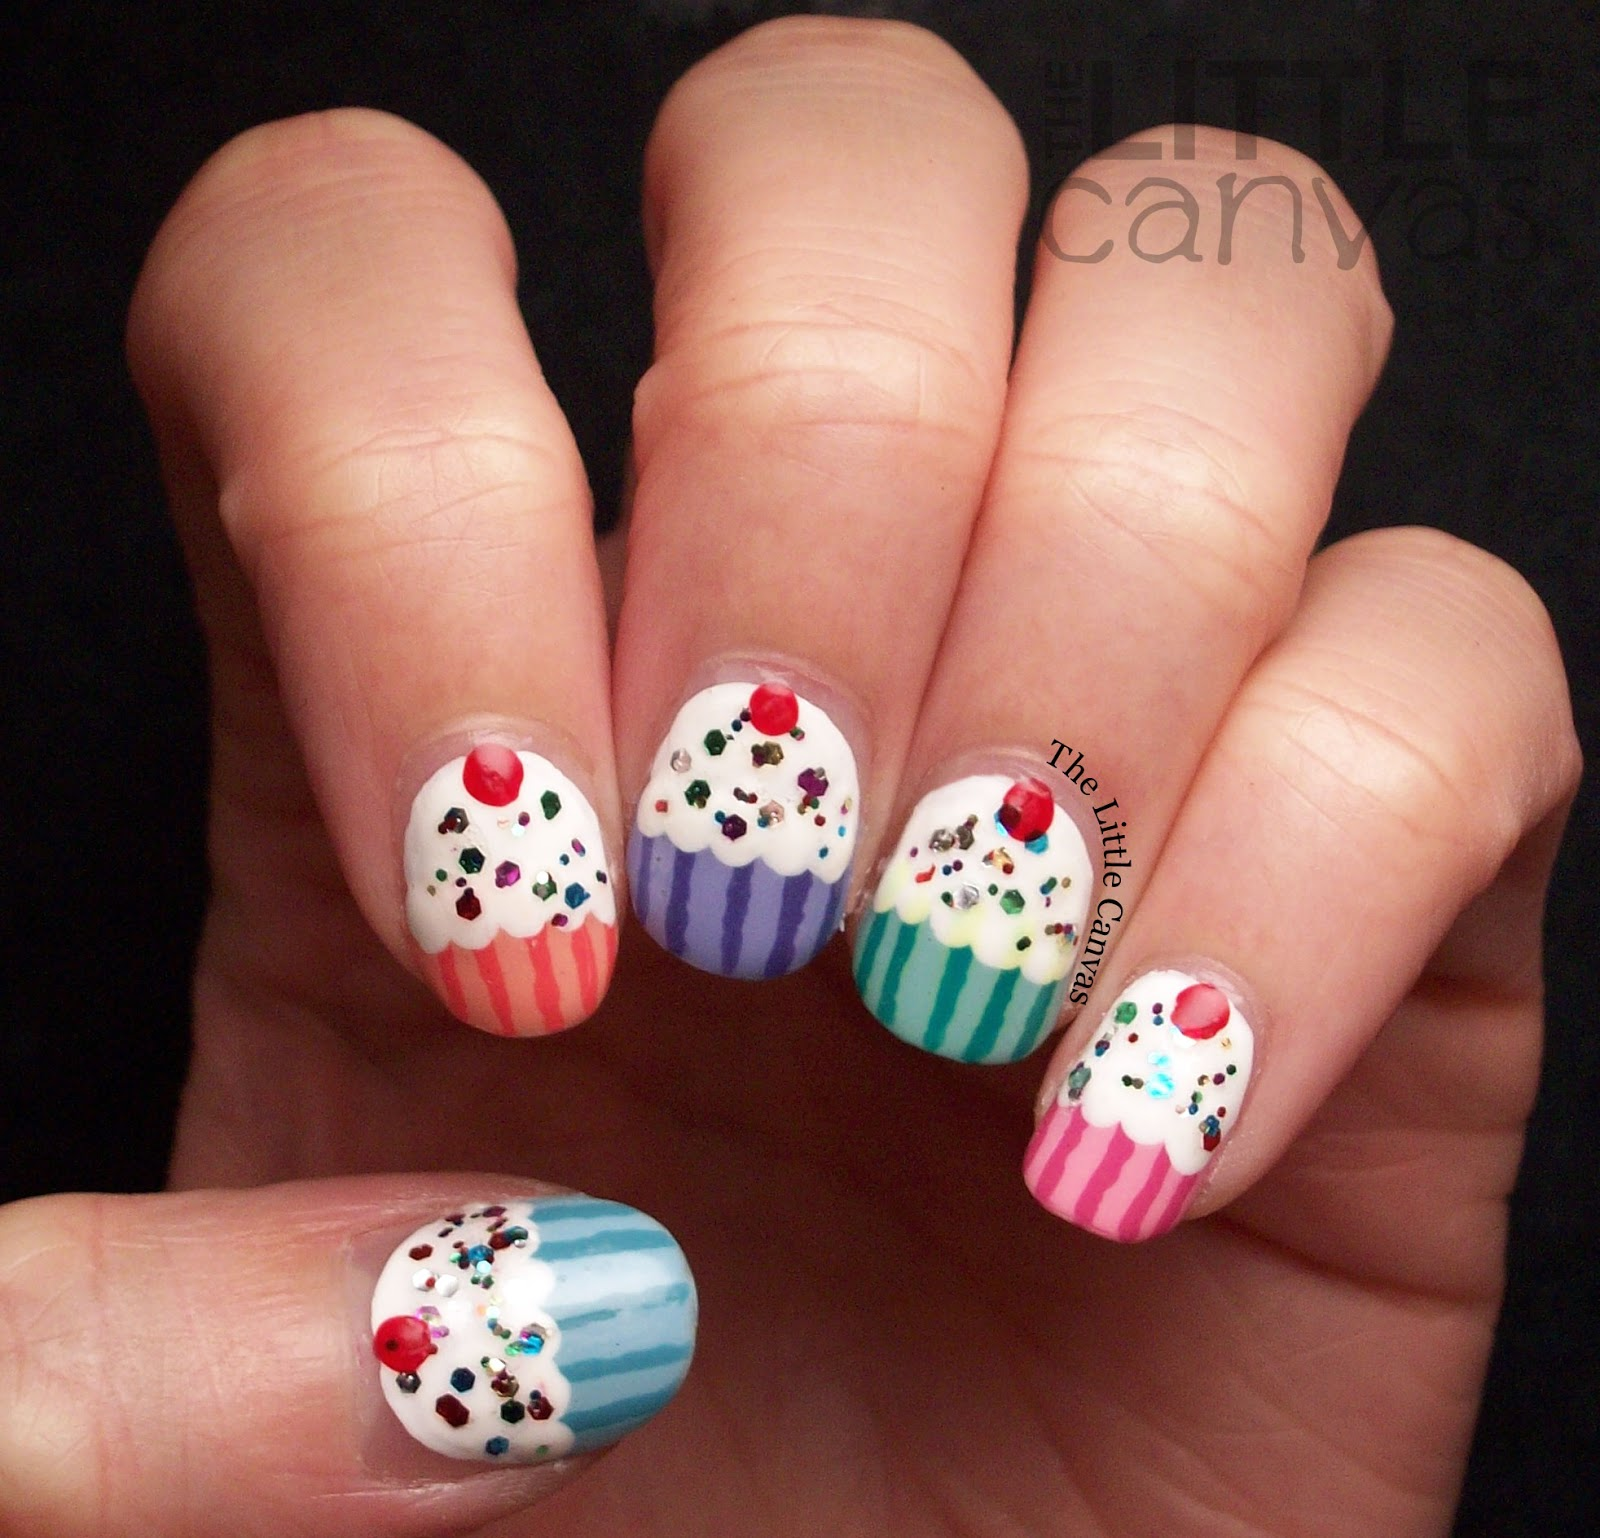 Birthday cupcake nail art the little canvas birthday cupcake nail art prinsesfo Choice Image